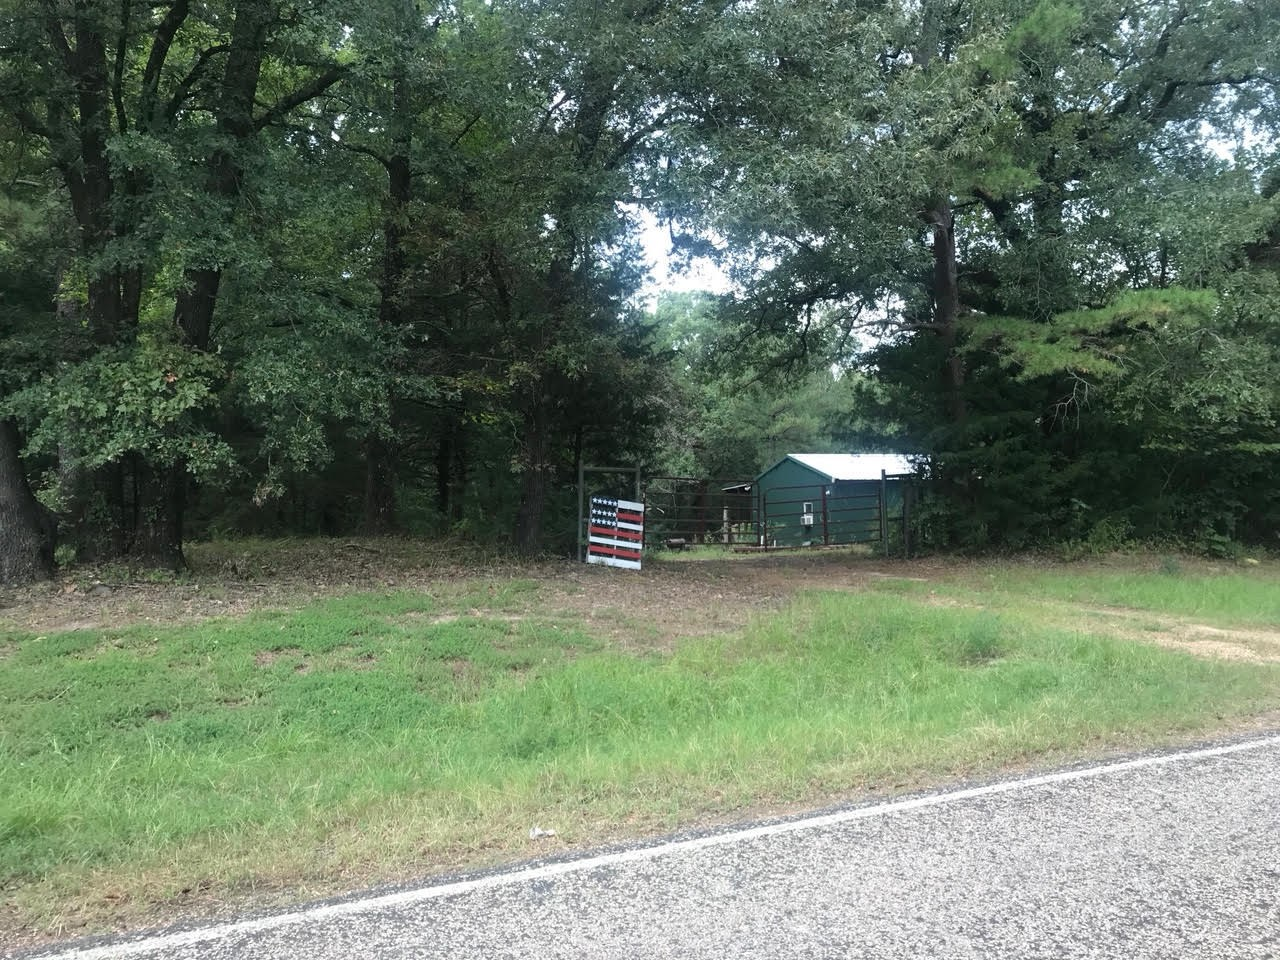 41+ ACRES OF RECREATIONAL PROPERTY IN BOWIE COUNTY, TEXAS